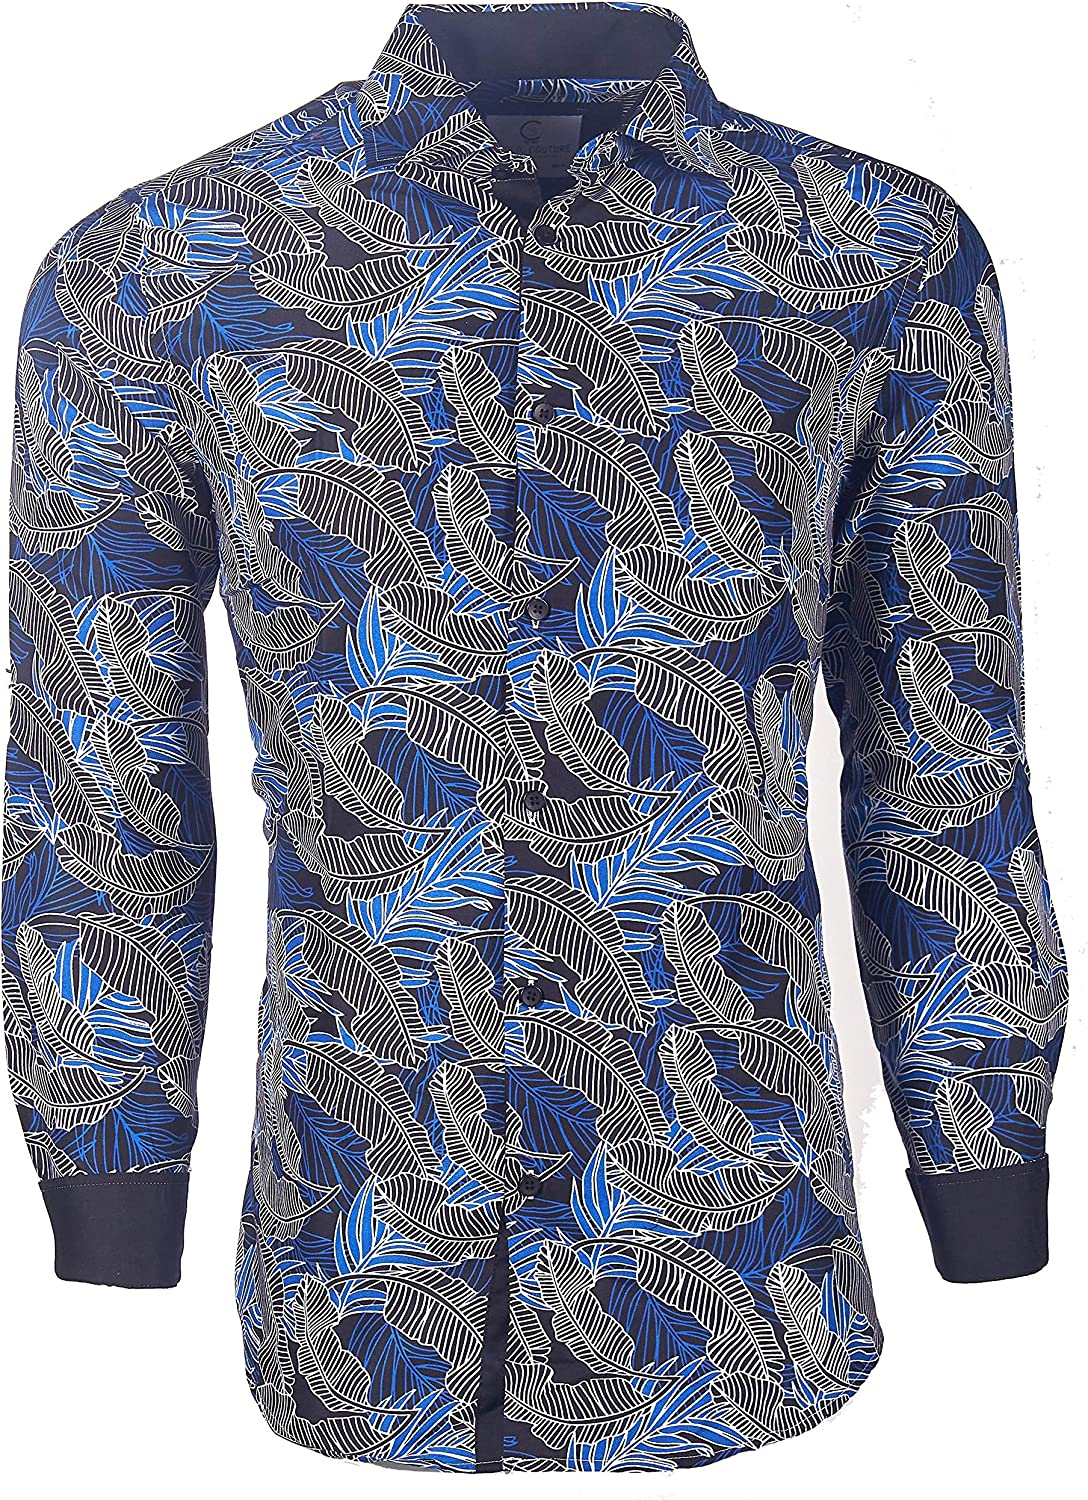 Suslo Couture Men's Floral Designer Printed Long Sleeve Casual Wrinkle-Free Party Button Down Slim Fit Dress Shirts